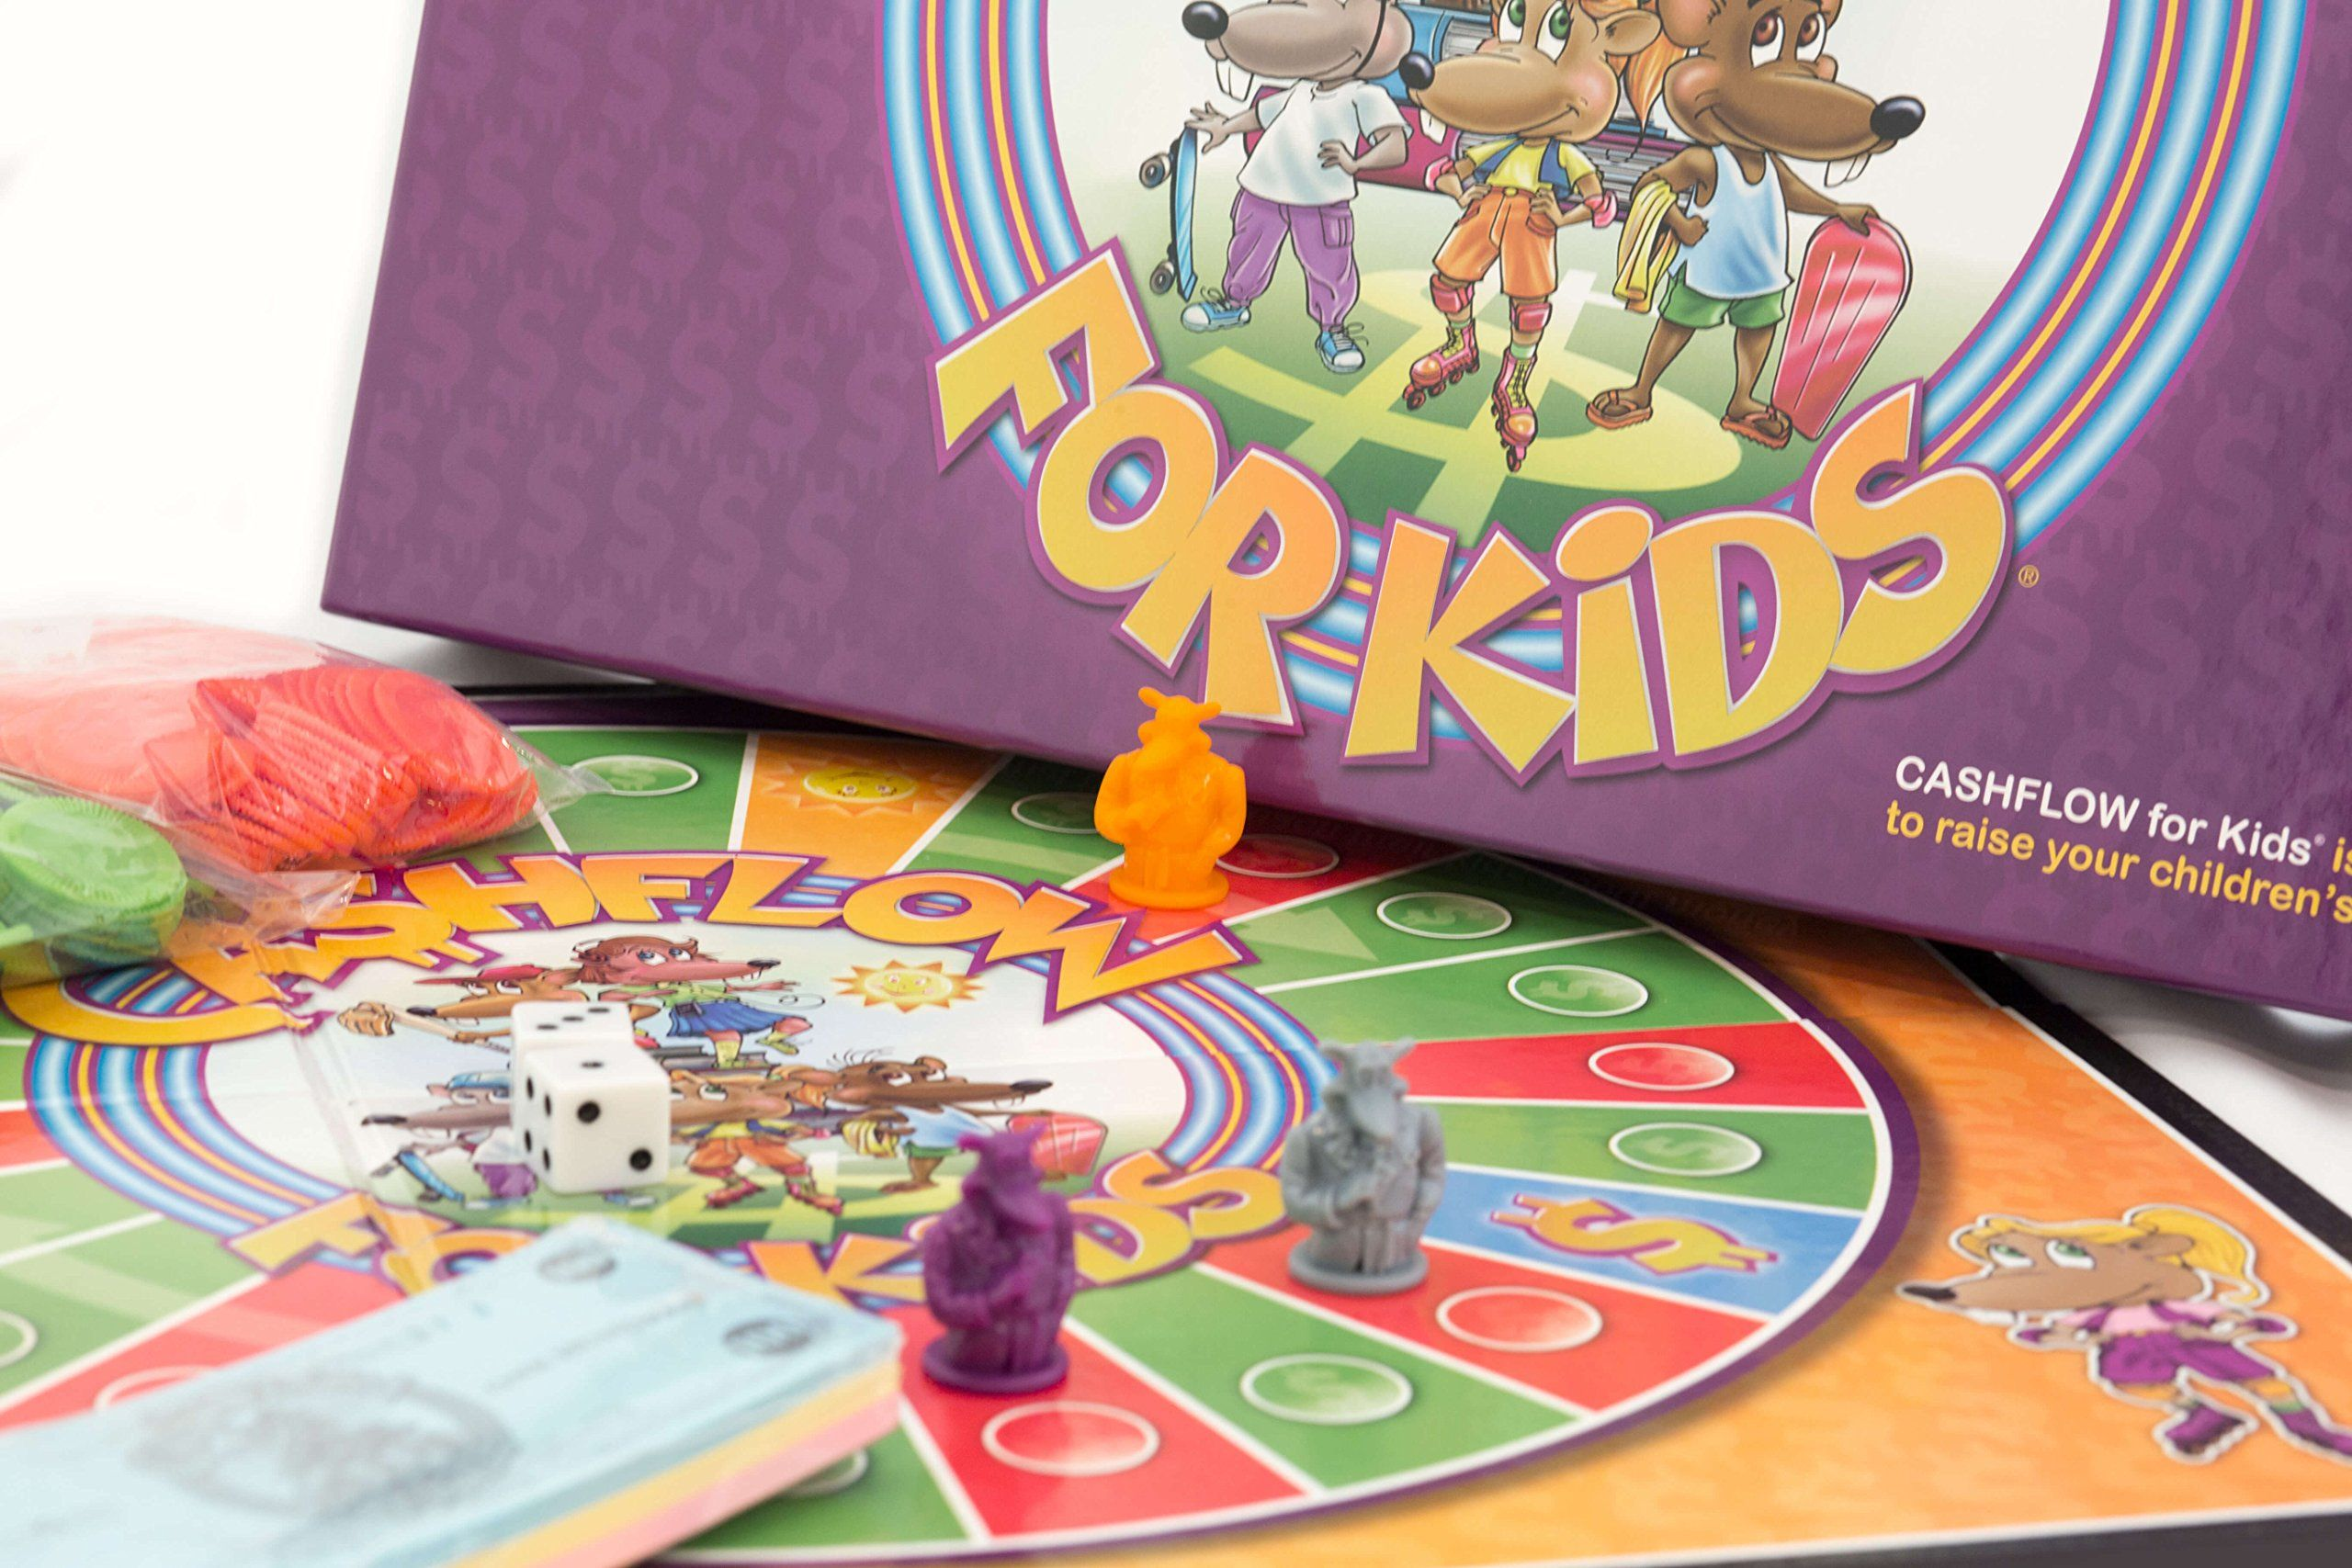 CASHFLOW for KIDS Board Game with Exclusive Bonus Message